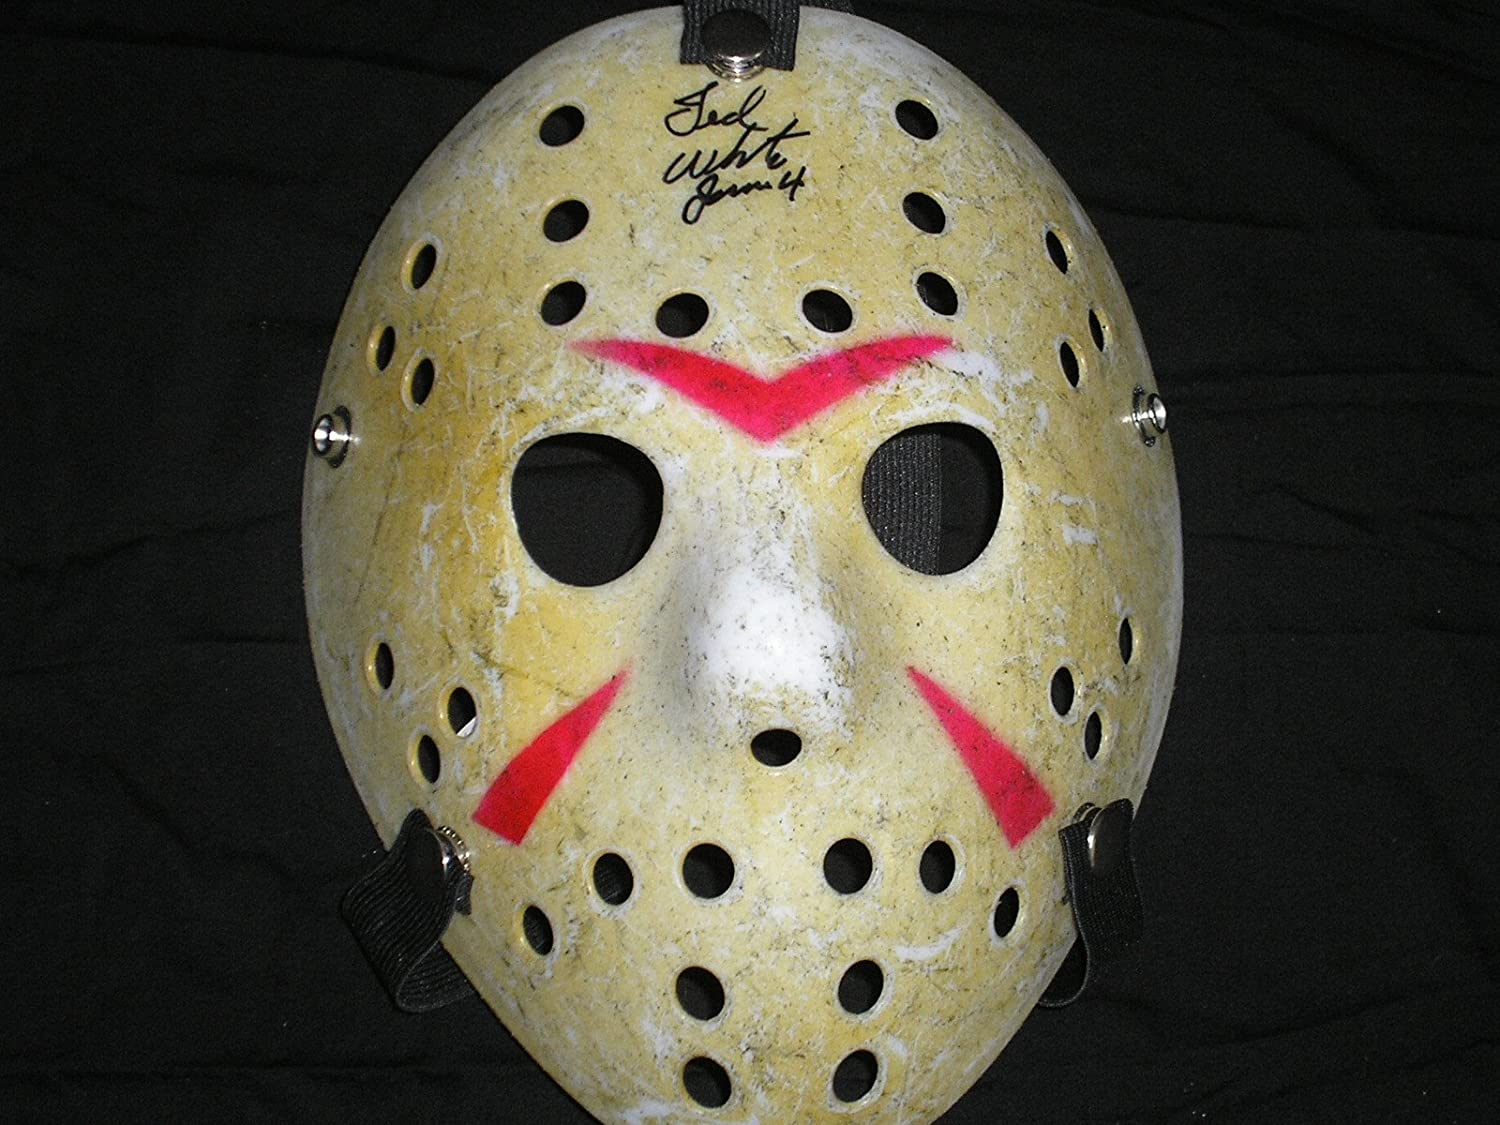 TED WHITE Signed Hockey Mask Jason Voorhees Friday the 13th Part 4